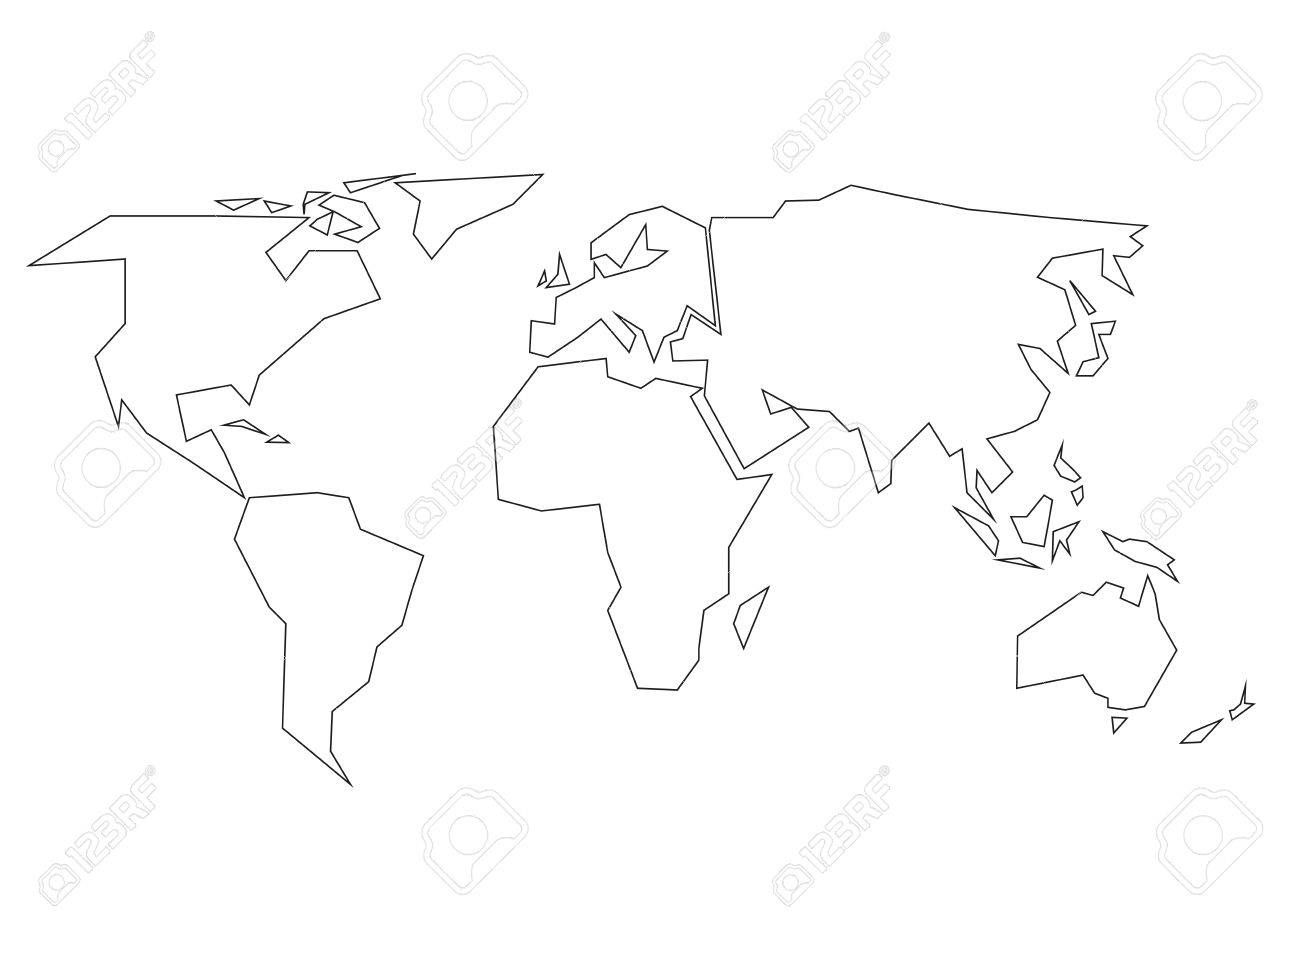 Simplified black outline of world map divided to six continents simplified black outline of world map divided to six continents simple flat vector illustration on gumiabroncs Gallery